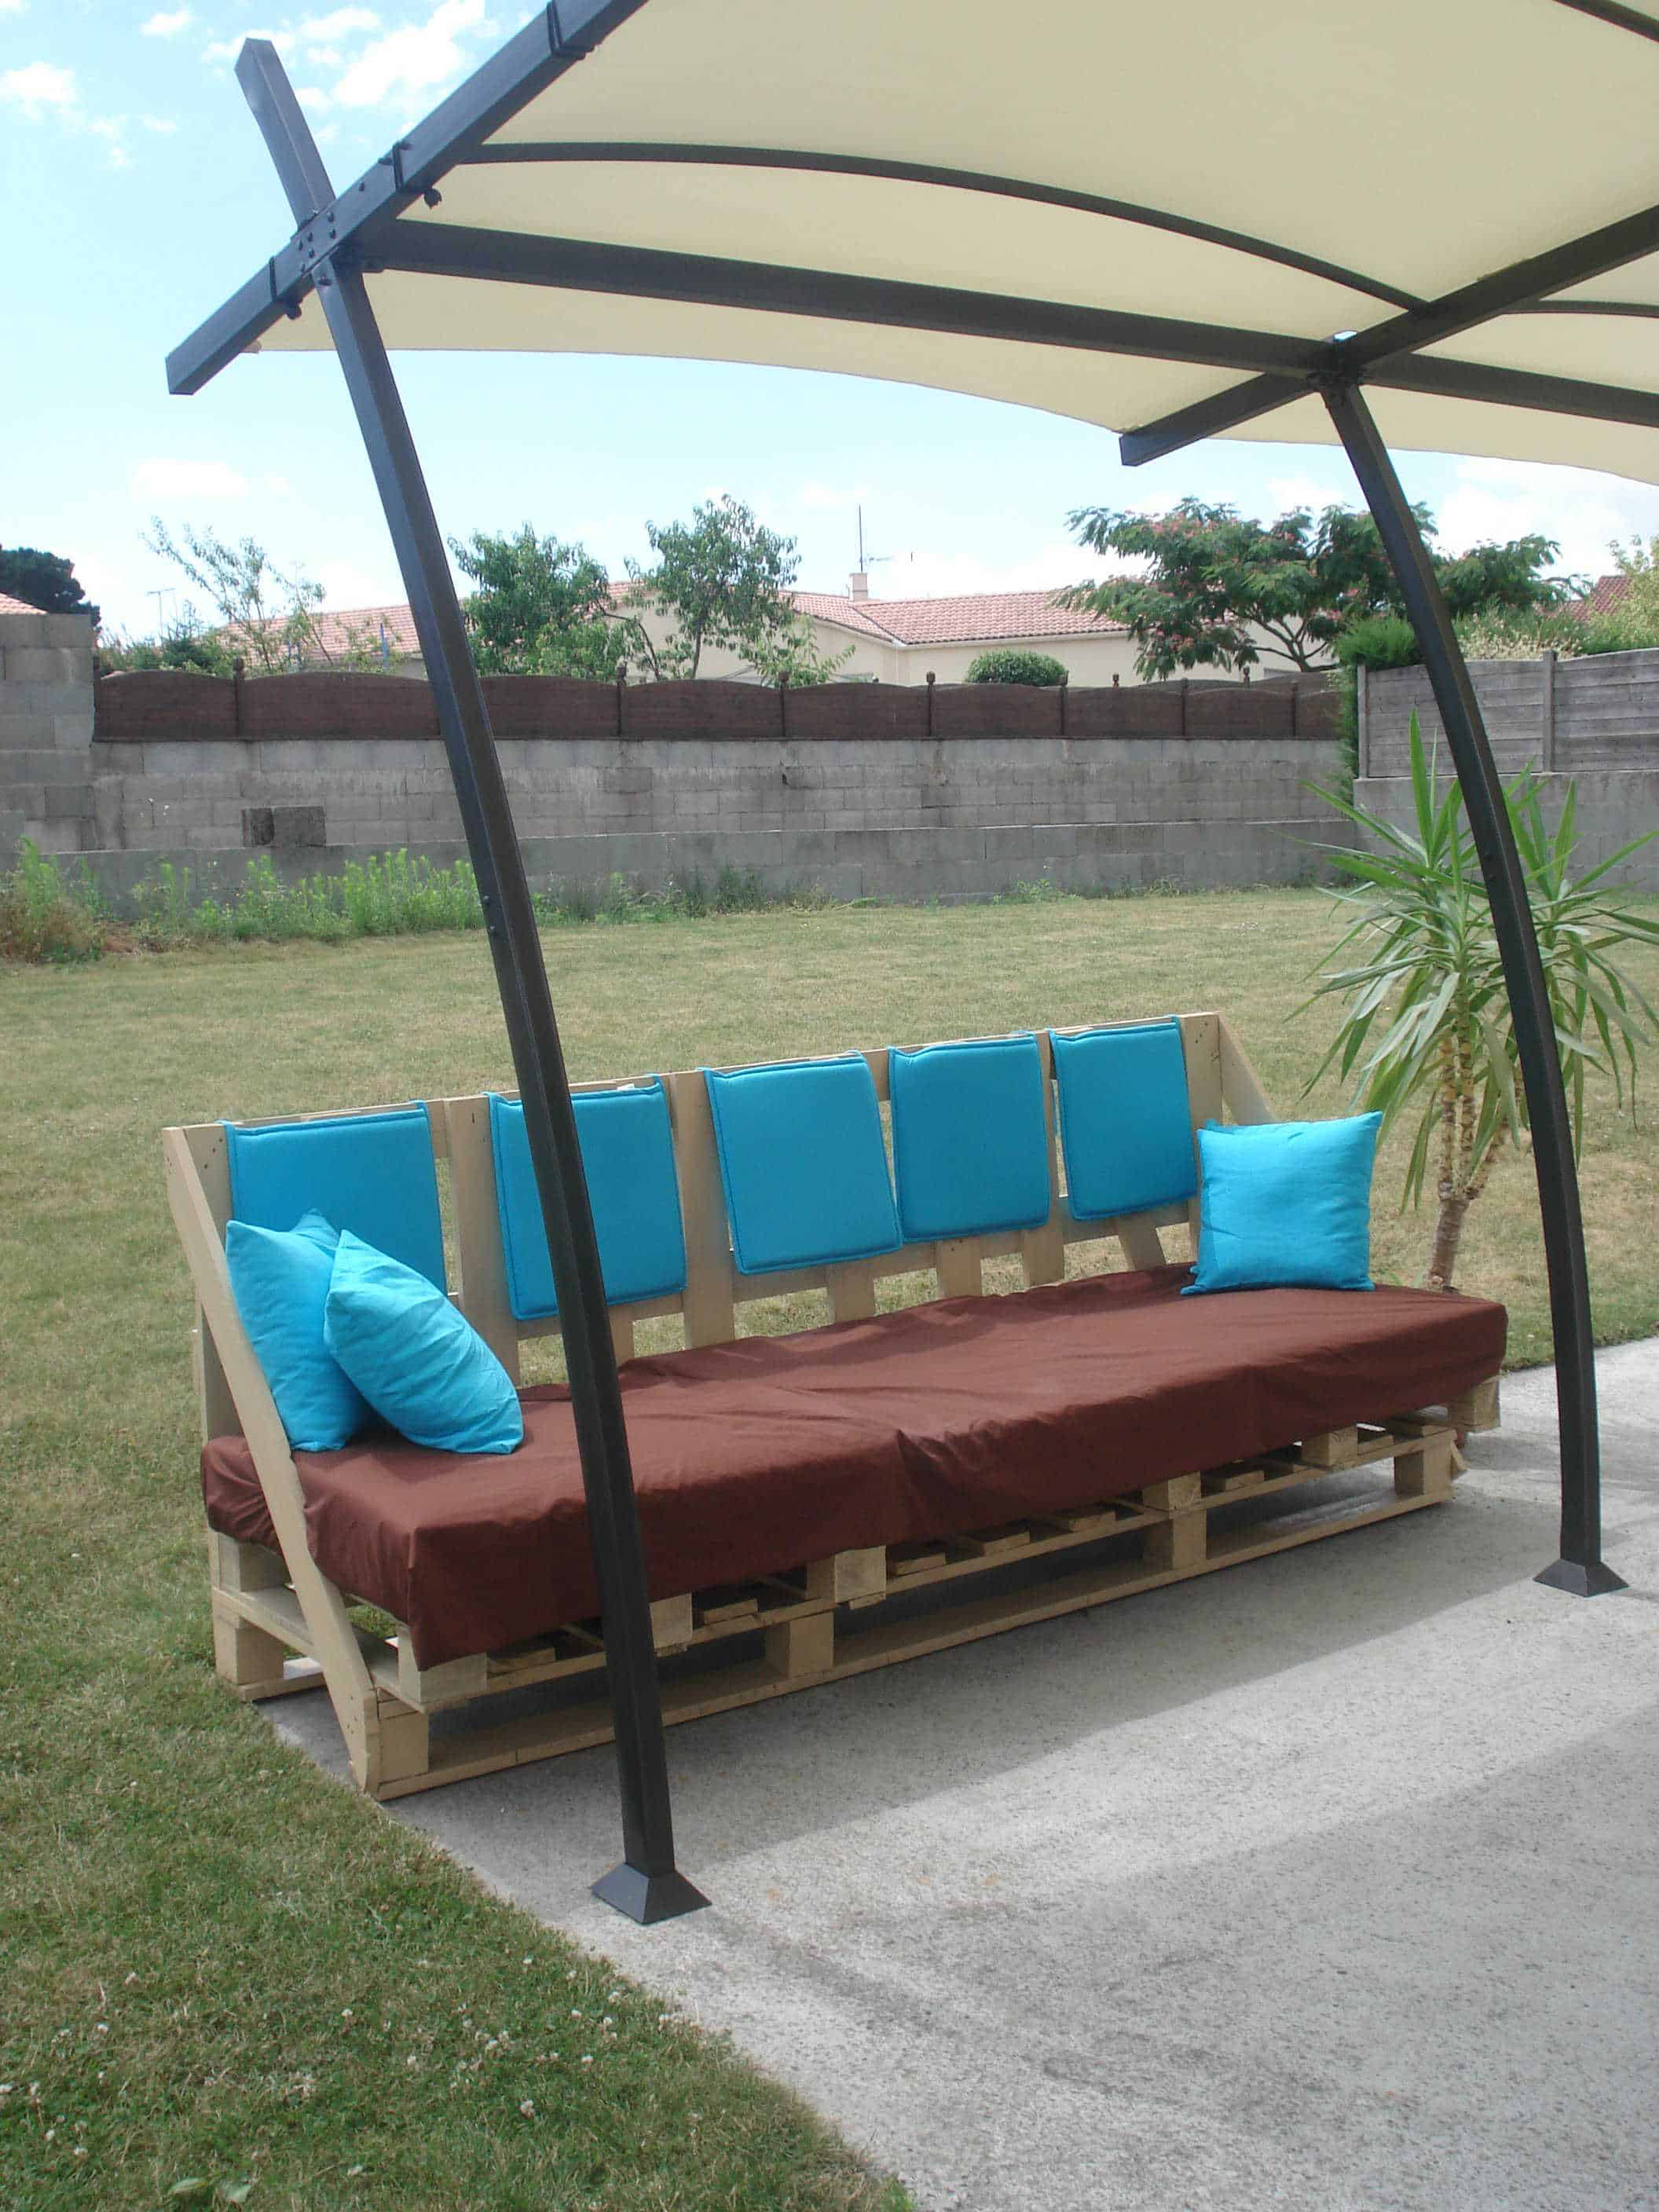 Patio From Pallets Outdoor Sofa From Discarded Pallets Canapc Dextcrieur Avec Des